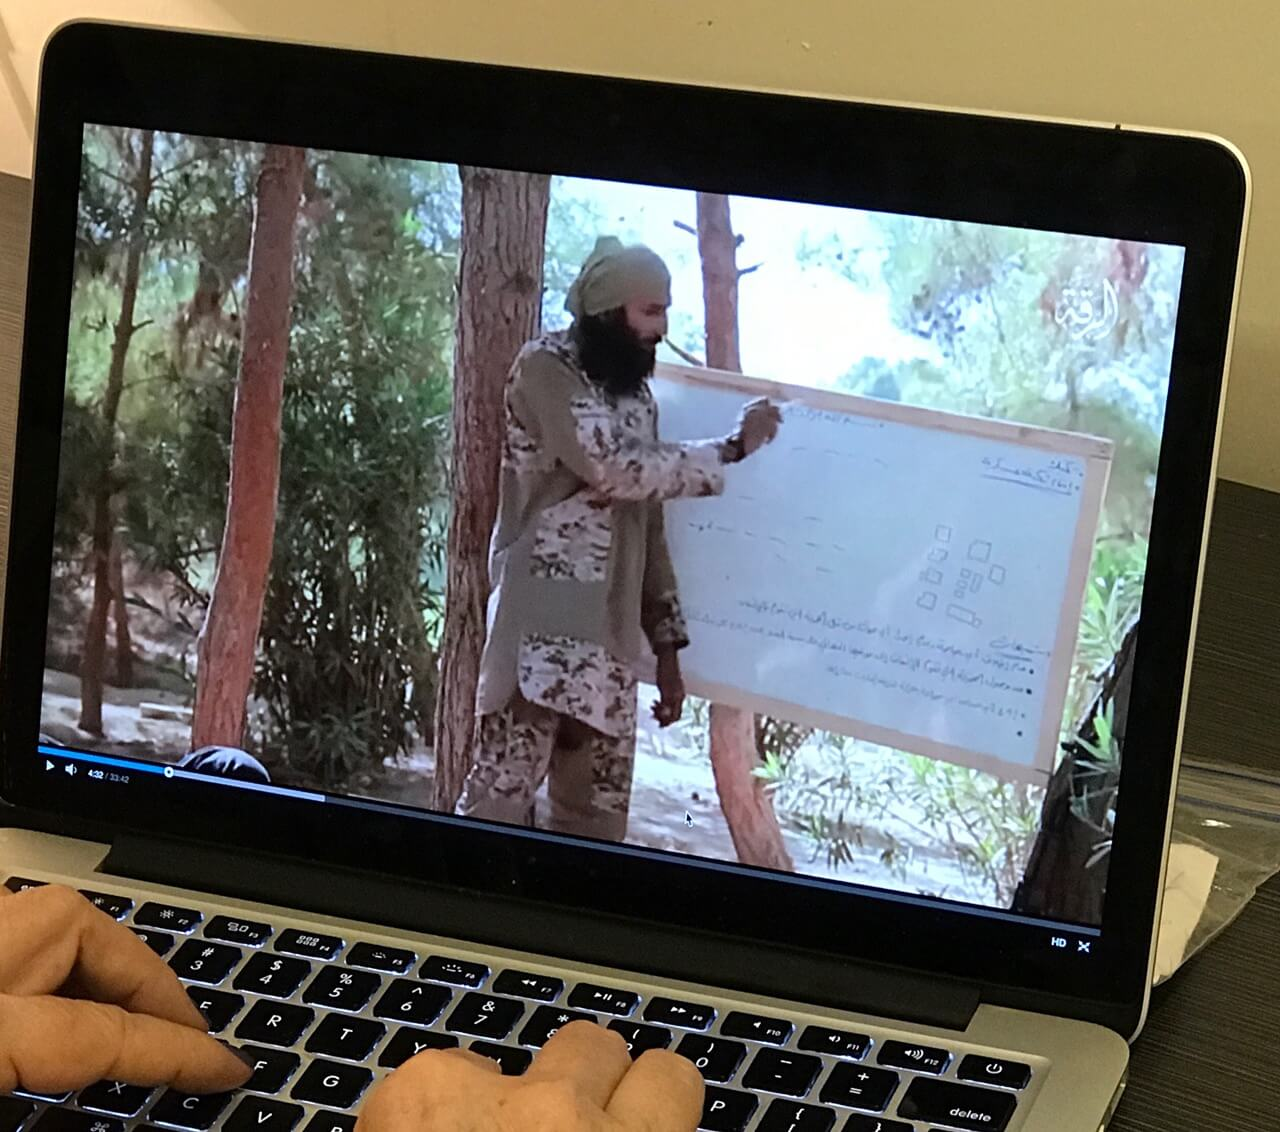 Beating ISIS In The Digital Space: Focus Testing ISIS Defector Counter-Narrative Videos With American College Students